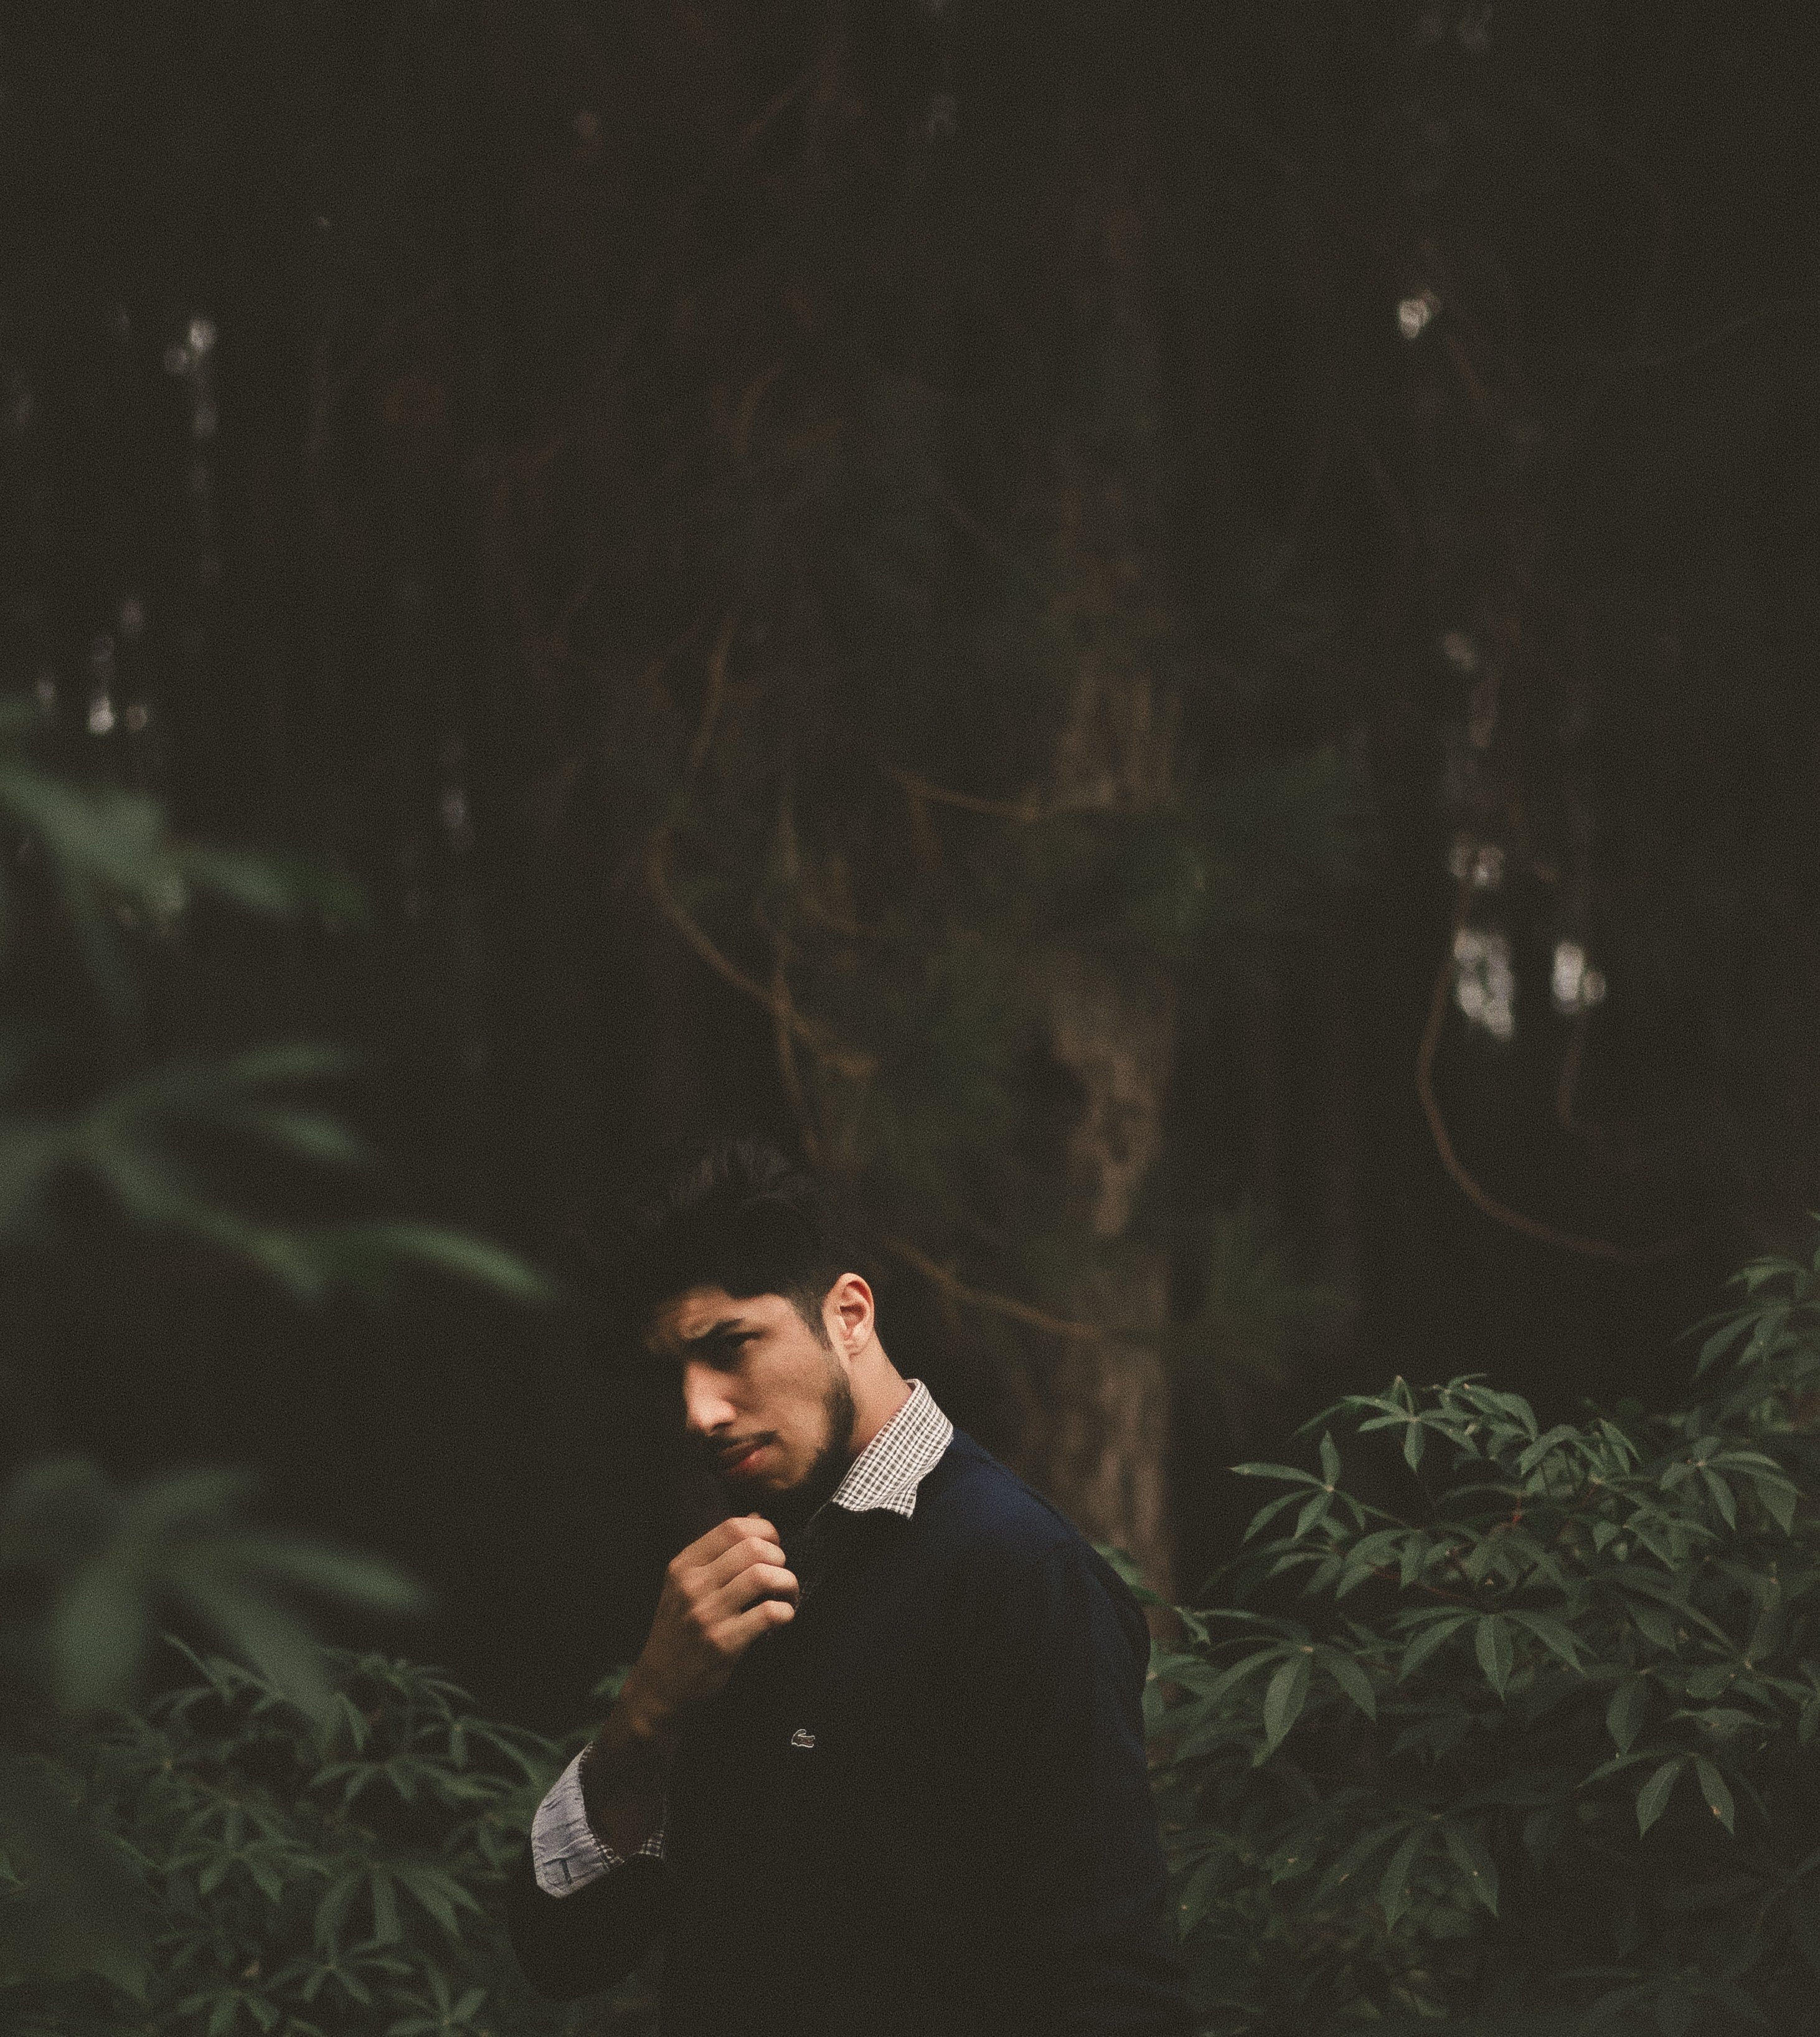 An elegantly dressed man in a forest